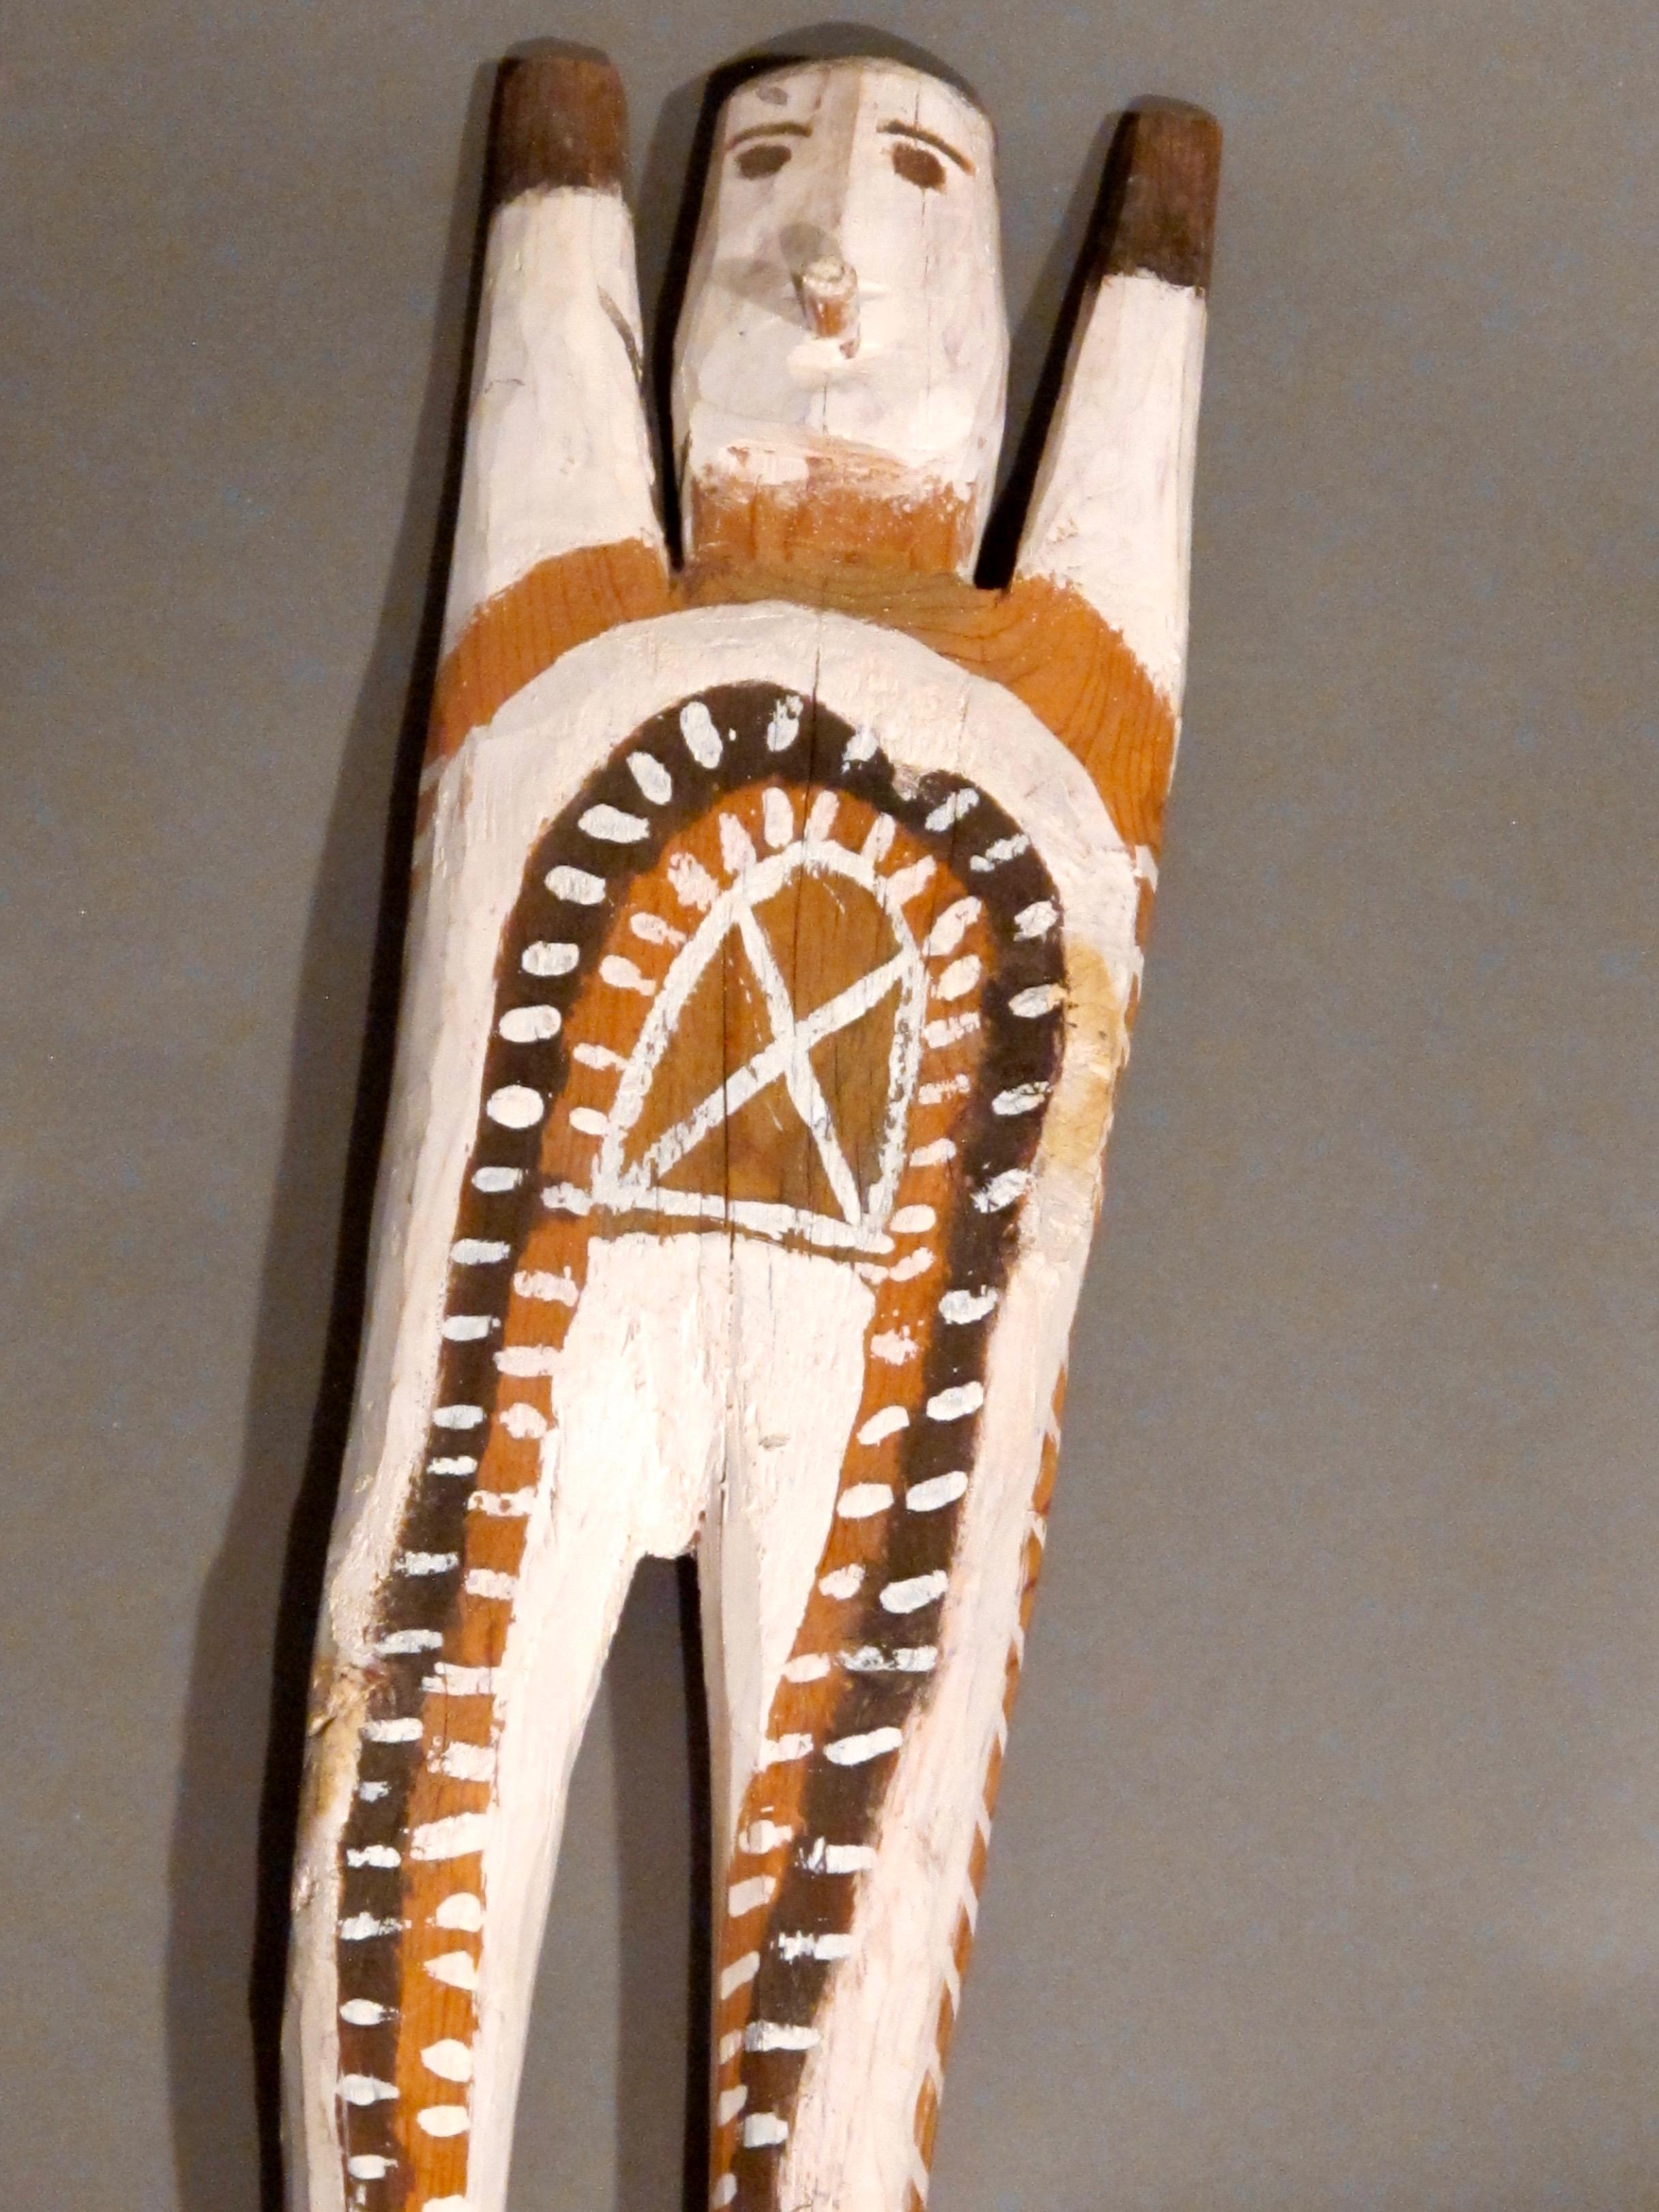 Untitled Figure with X on Chest by Charlie Willeto, Navajo Folk Art, wood, paint